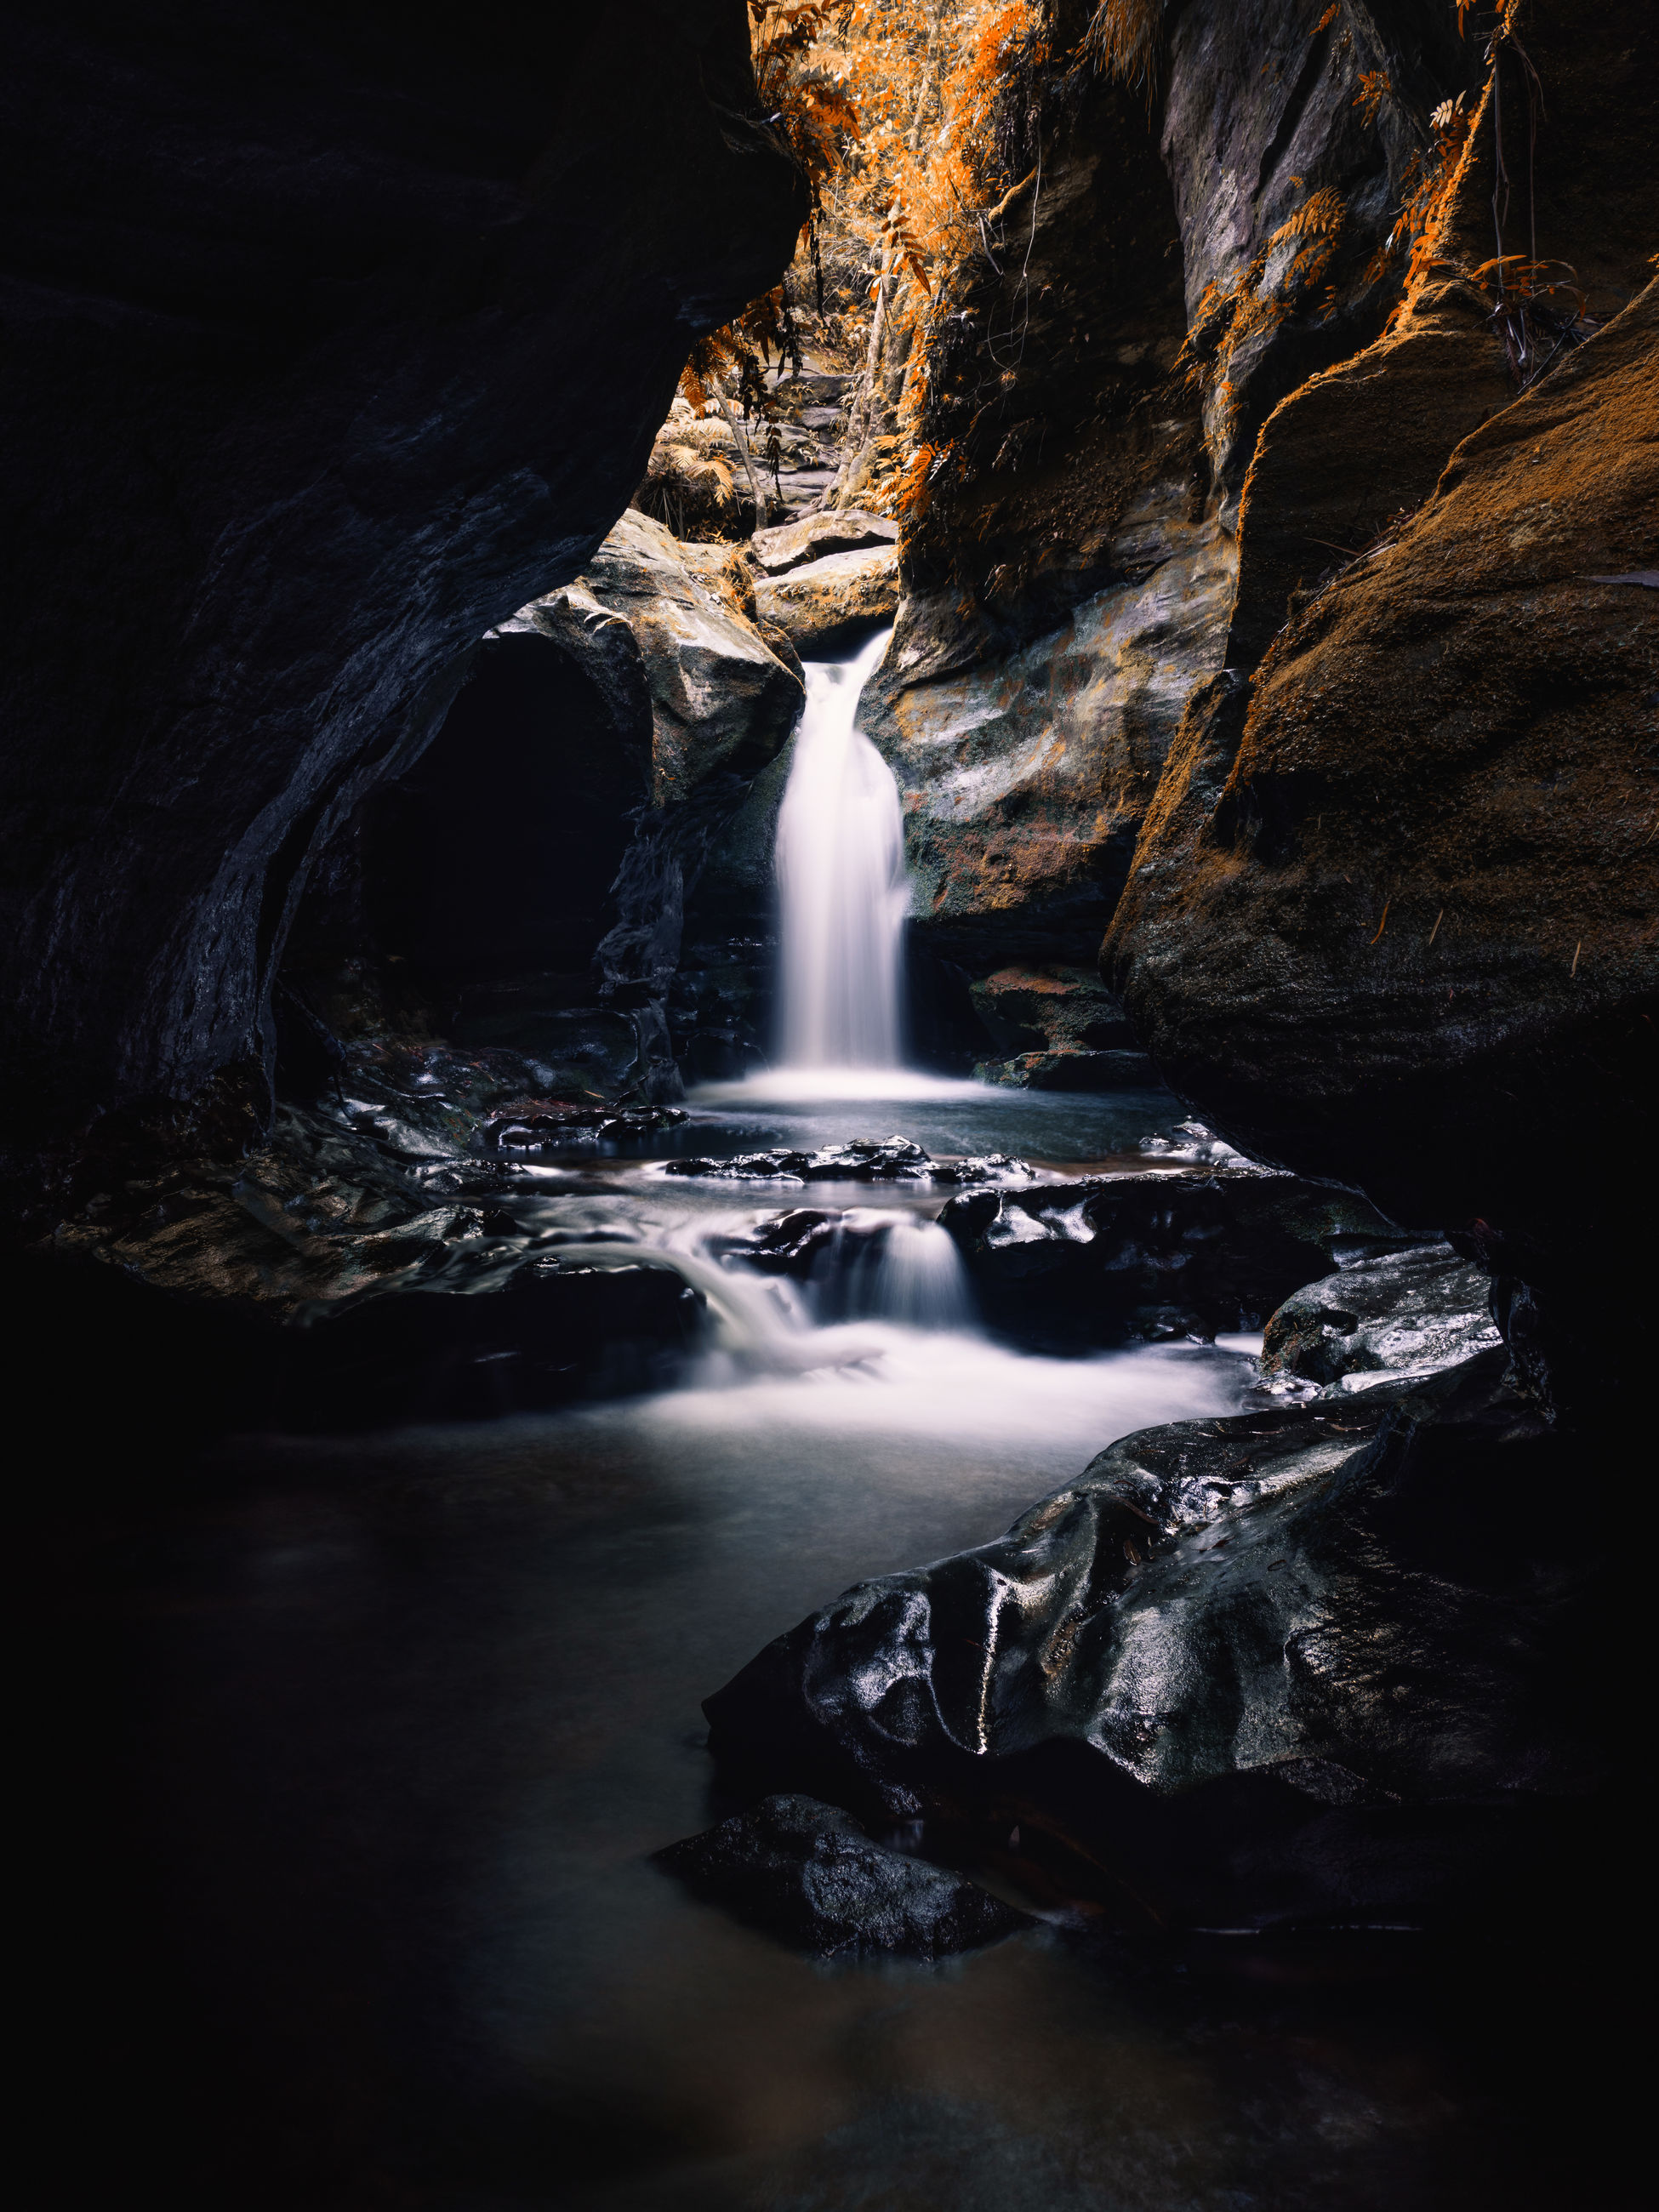 rock, rock - object, solid, water, rock formation, beauty in nature, scenics - nature, long exposure, waterfall, motion, nature, no people, flowing water, blurred motion, land, non-urban scene, travel destinations, day, flowing, outdoors, power in nature, eroded